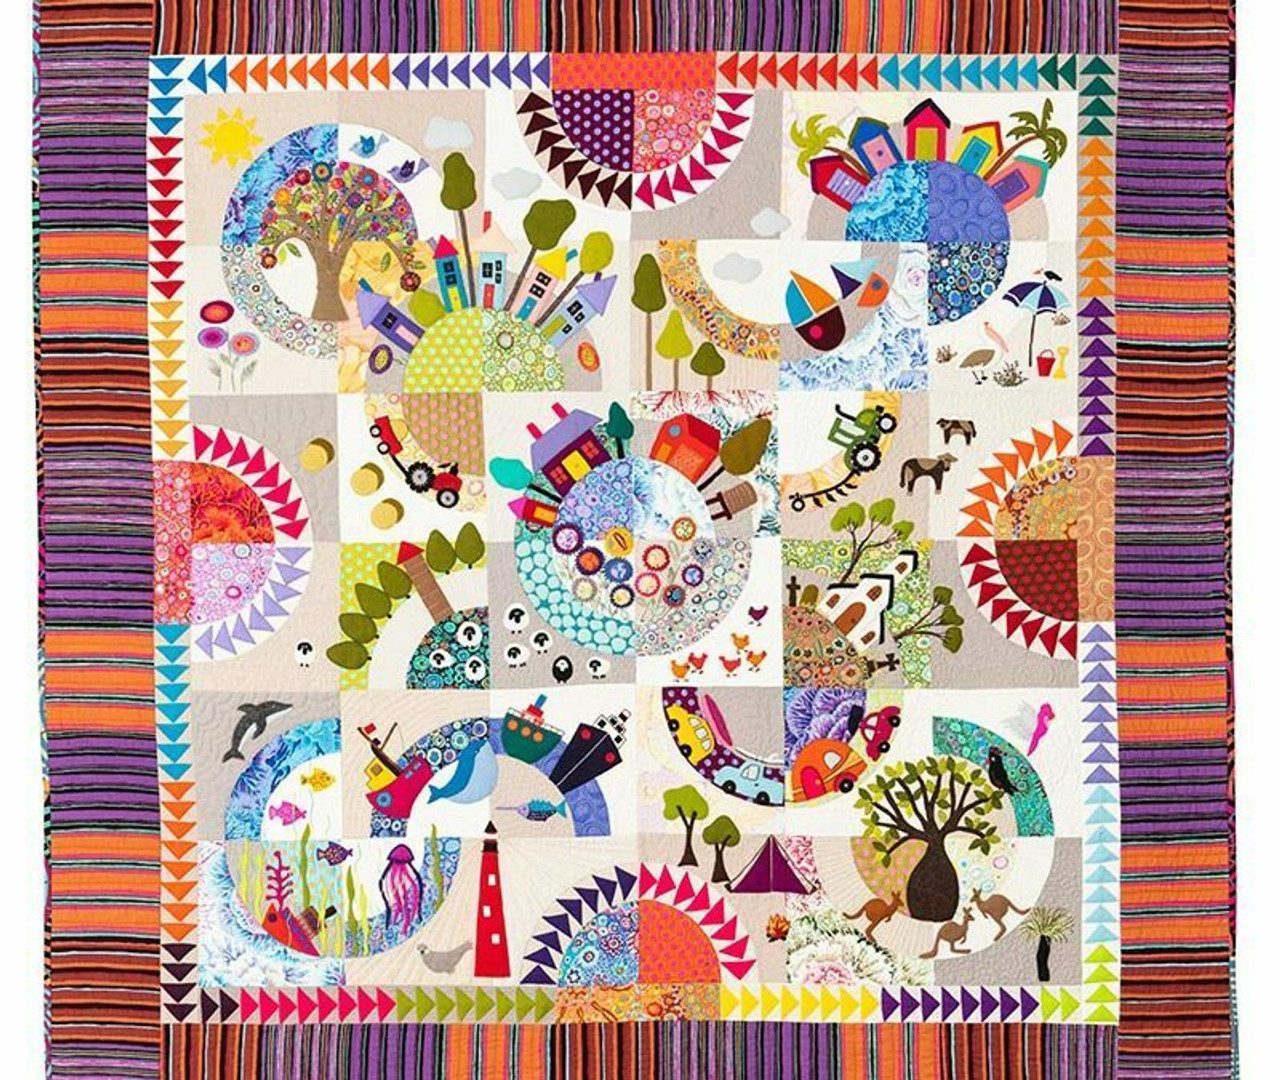 Wendy Williams : Over the Hill - Quilt Pattern